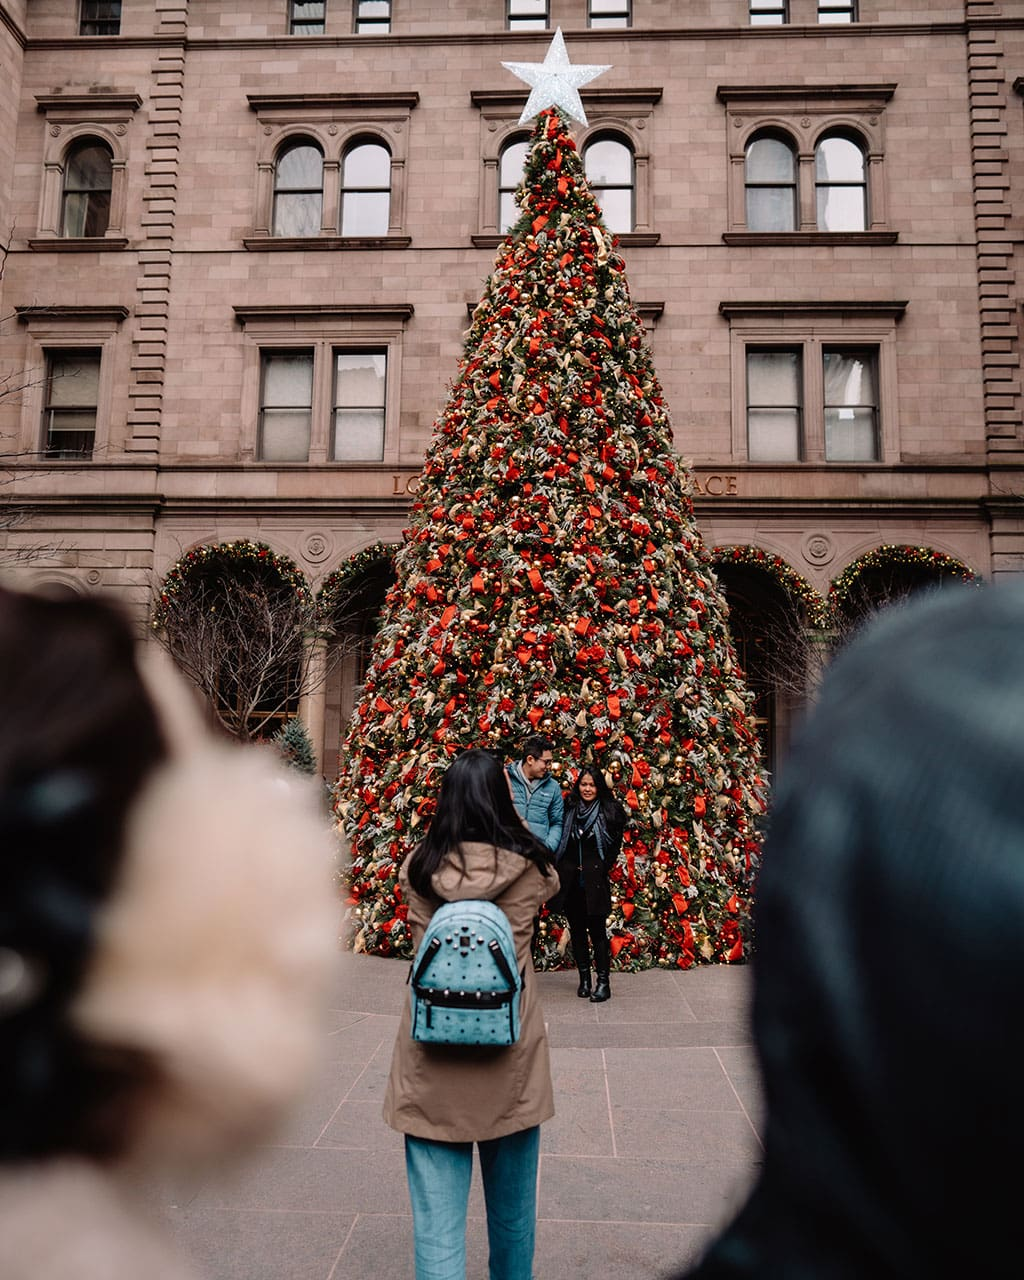 Reasons to visit New York in winter